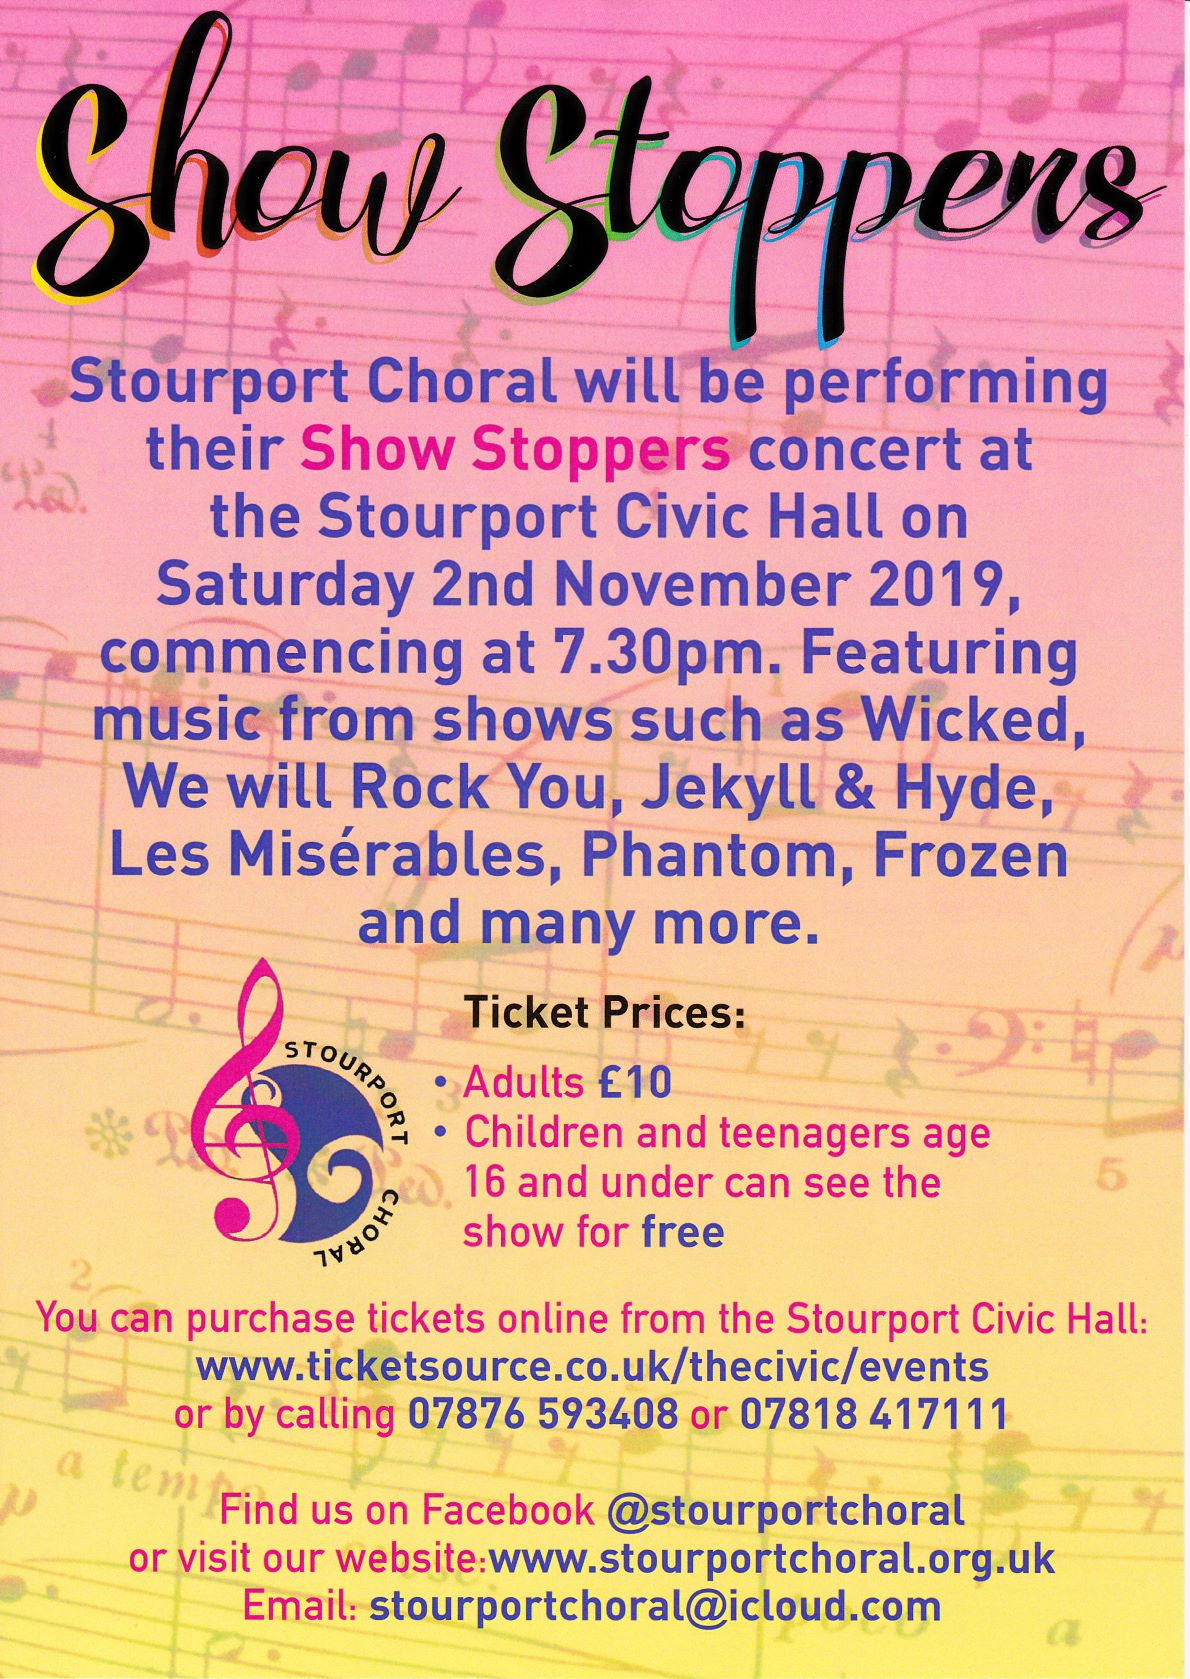 Free entry to ALL children age 16 and under to Concert